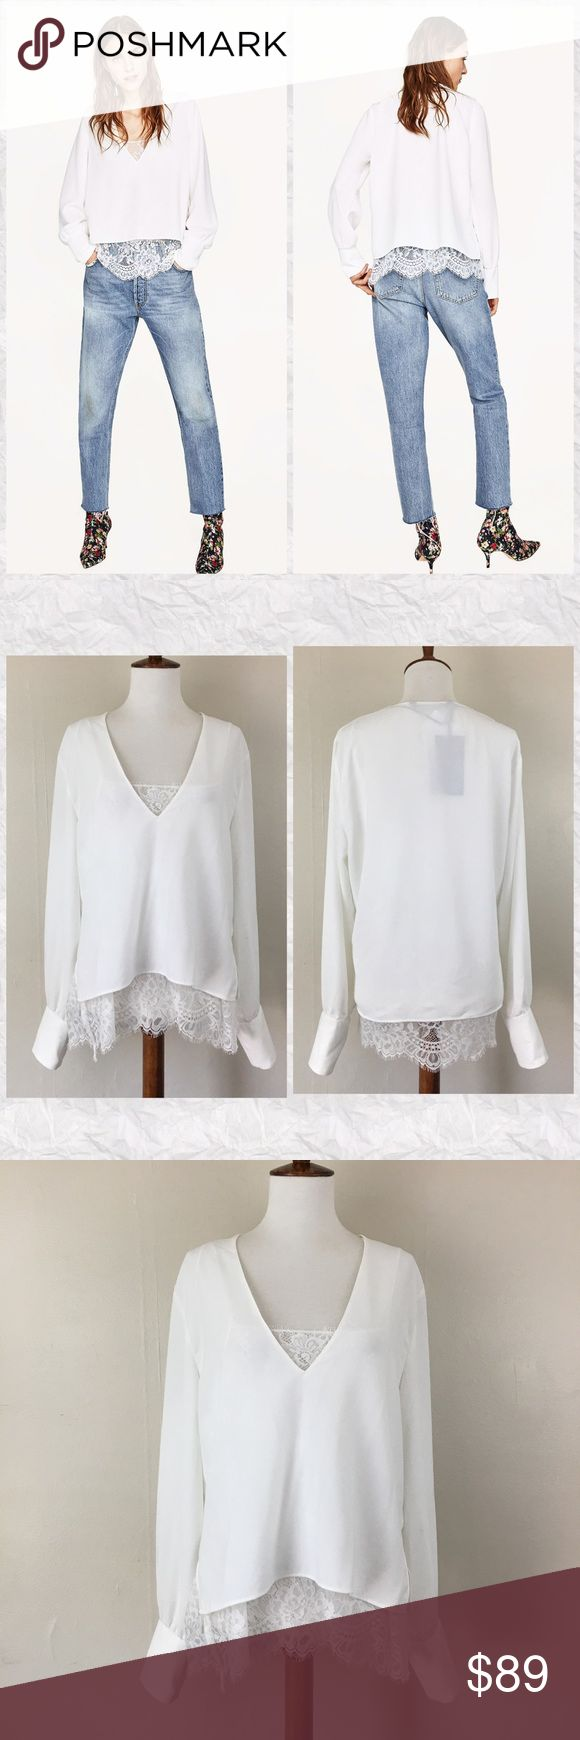 """Zara Layered Lace Long Sleeve V-Neck Blouse *Condition: NWT. There are a few faint smudges from in store try ons shown in photos.  *V-Neck with attached Lace Cami *Extra 1.5"""" to cami Strap that can be let out at buyer's discretion  *Long sleeve  *Outer shell: 100% Polyester  *Lining: 100% Polyamide  *Care: Machine wash  *Measurements are approx & taken lying flat *Sleeves: 25"""" *Bust: 40"""" *Shoulder to Hem of shell: 21"""" + 4.5"""" for Lace lining *Stored in non-smoking pet free home Zara Tops…"""